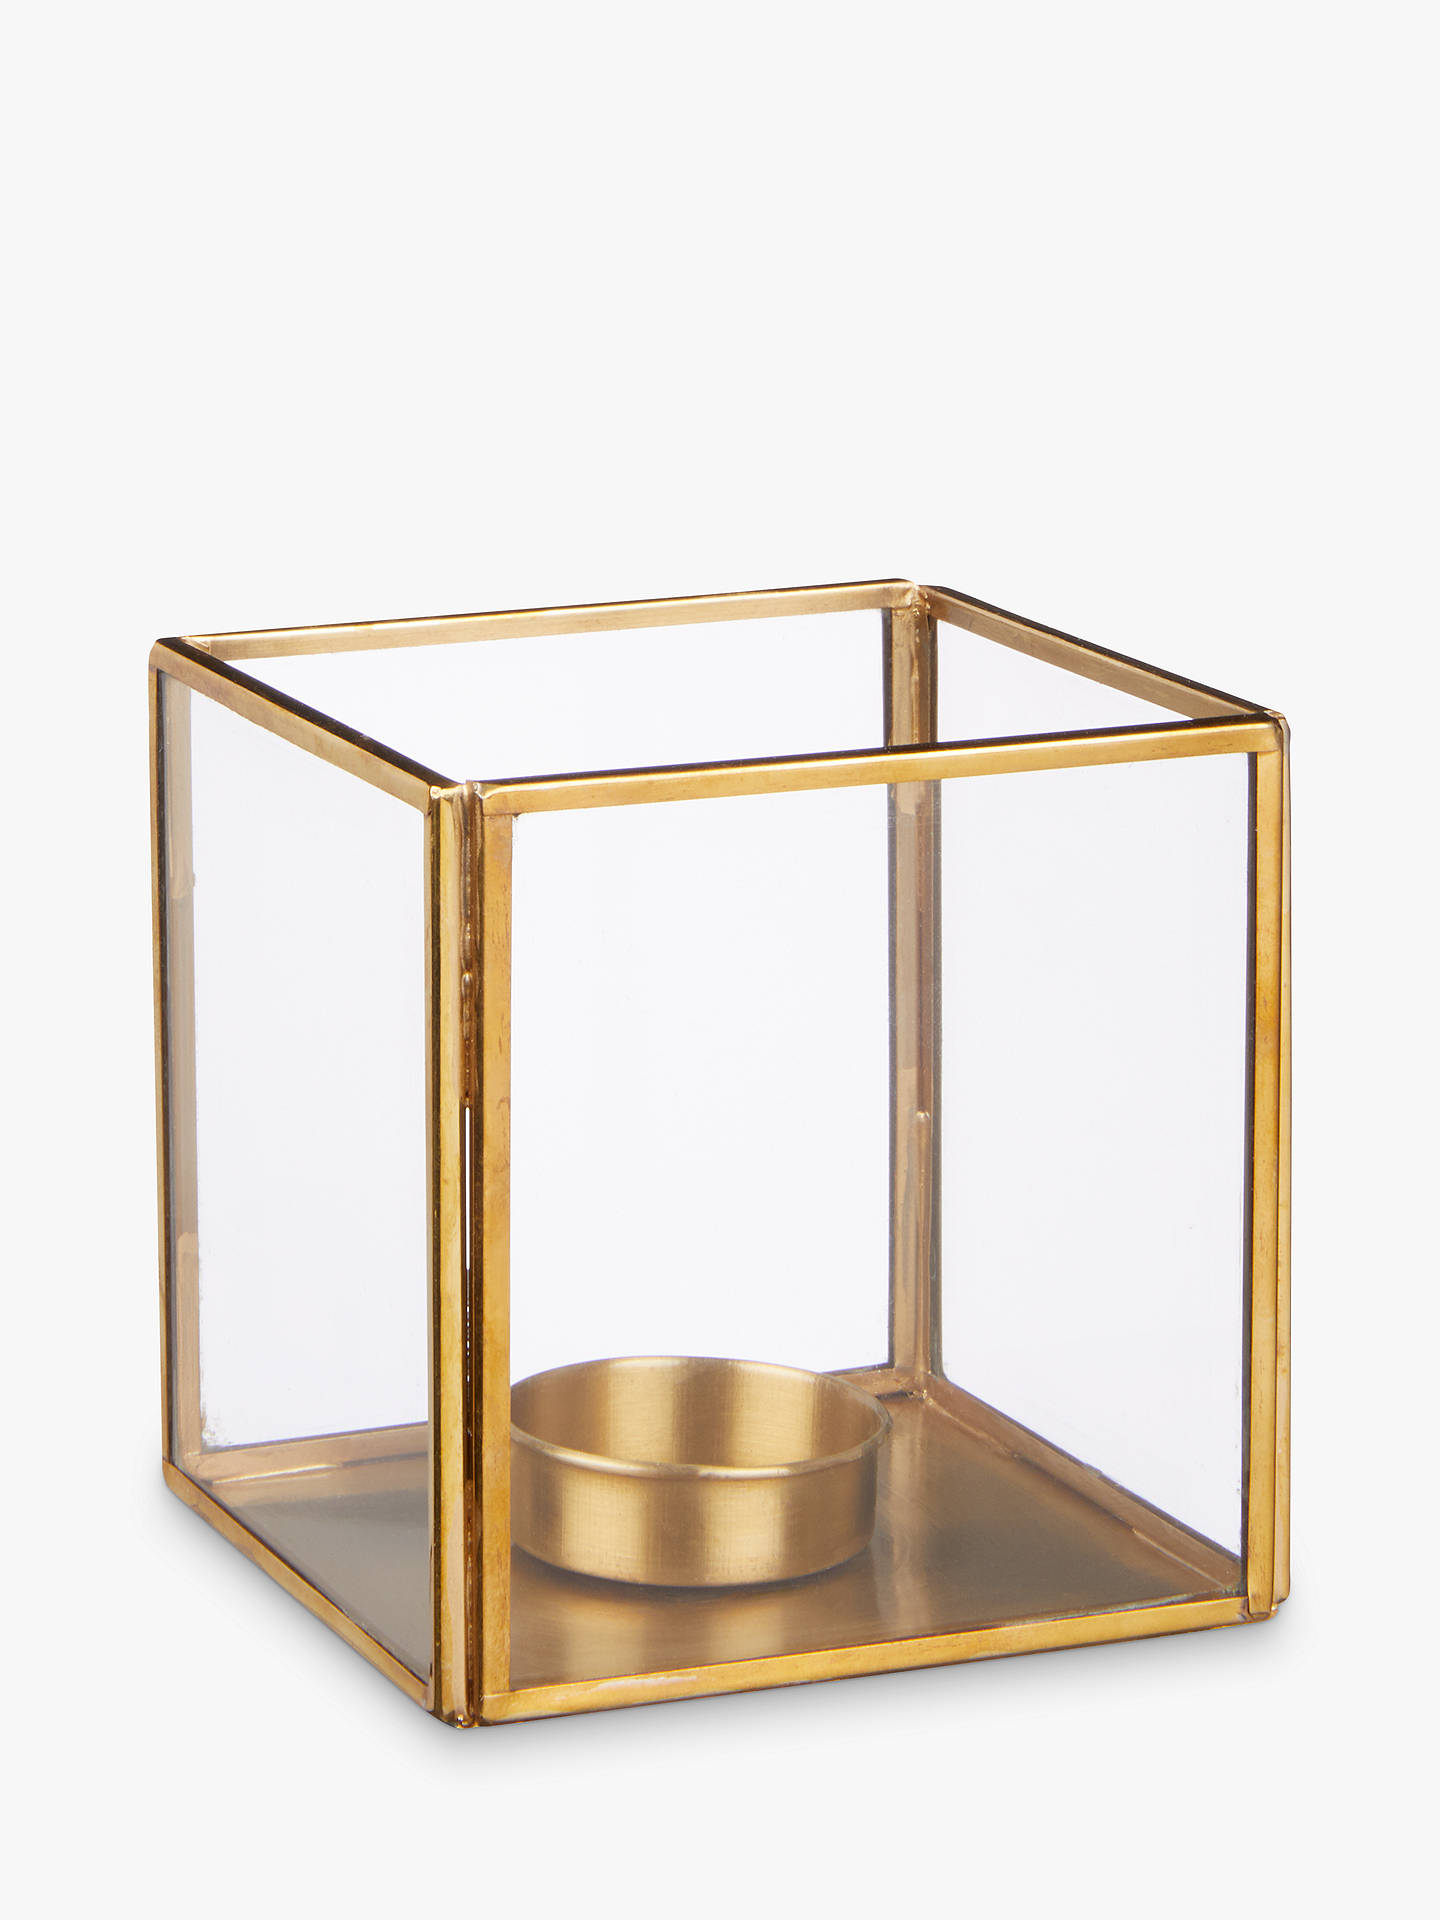 BuyJohn Lewis & Partners Cube Candle Holder, Brass Online at johnlewis.com